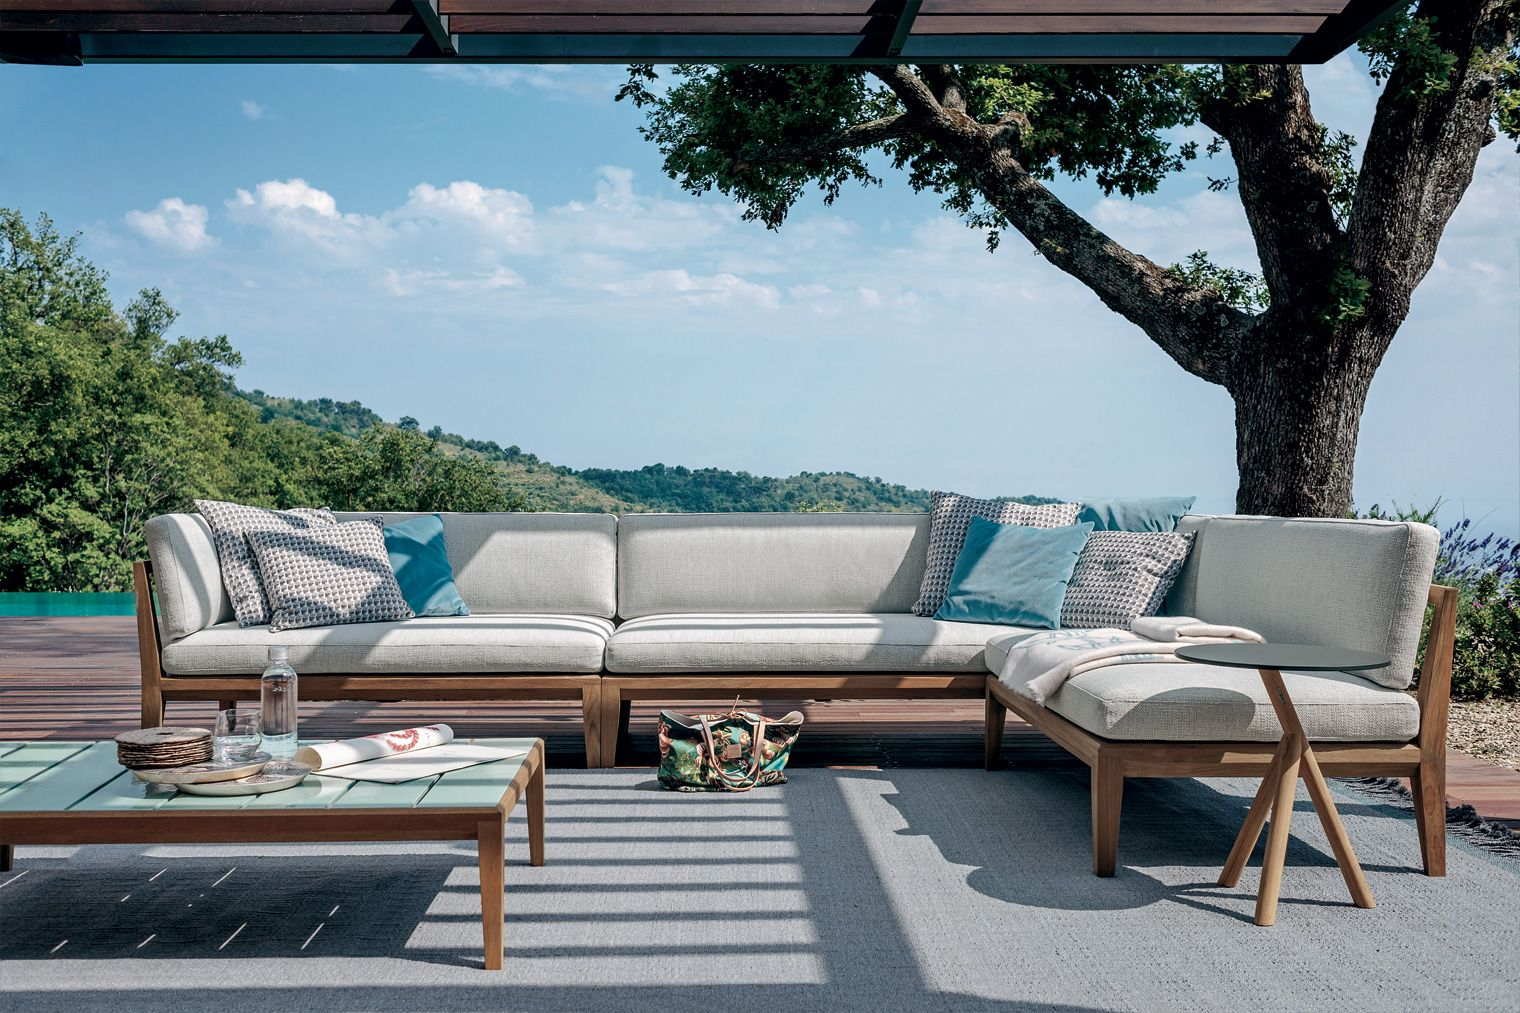 The new RODA 2017 catalogue for outdoor furniture - The New RODA 2017 Catalogue For Outdoor Furniture Beach House